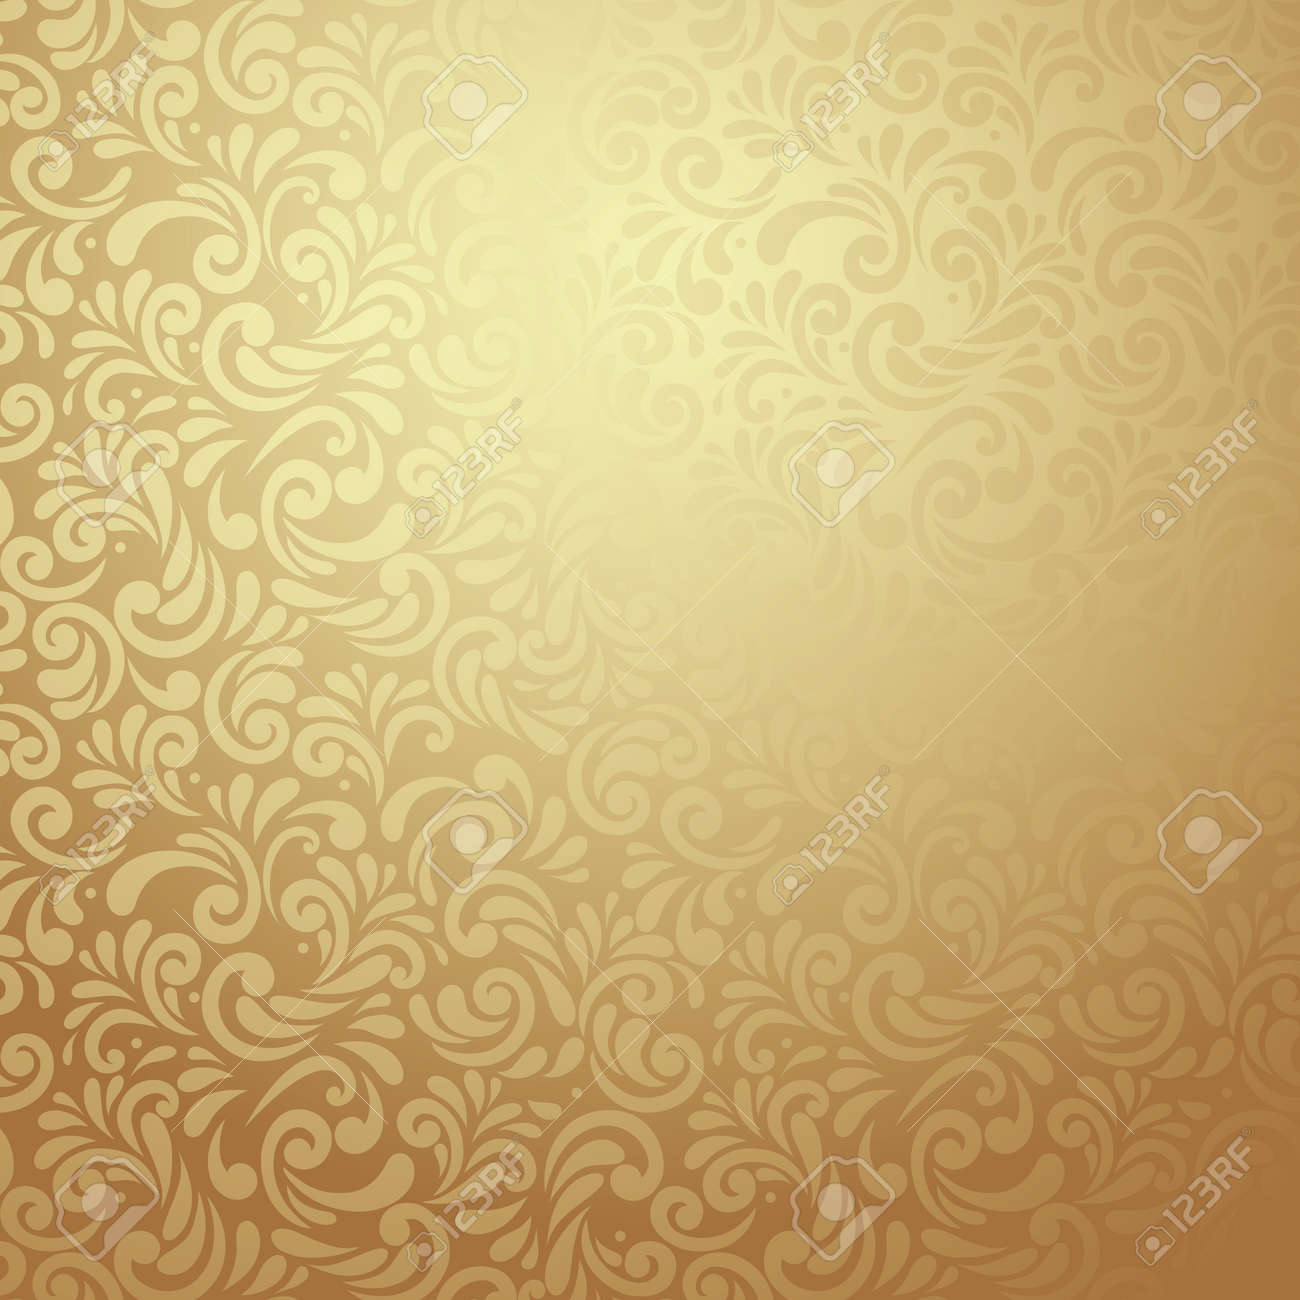 Elegant Stylish Abstract Floral Wallpaper Seamless Pattern In Gold Stock Vector